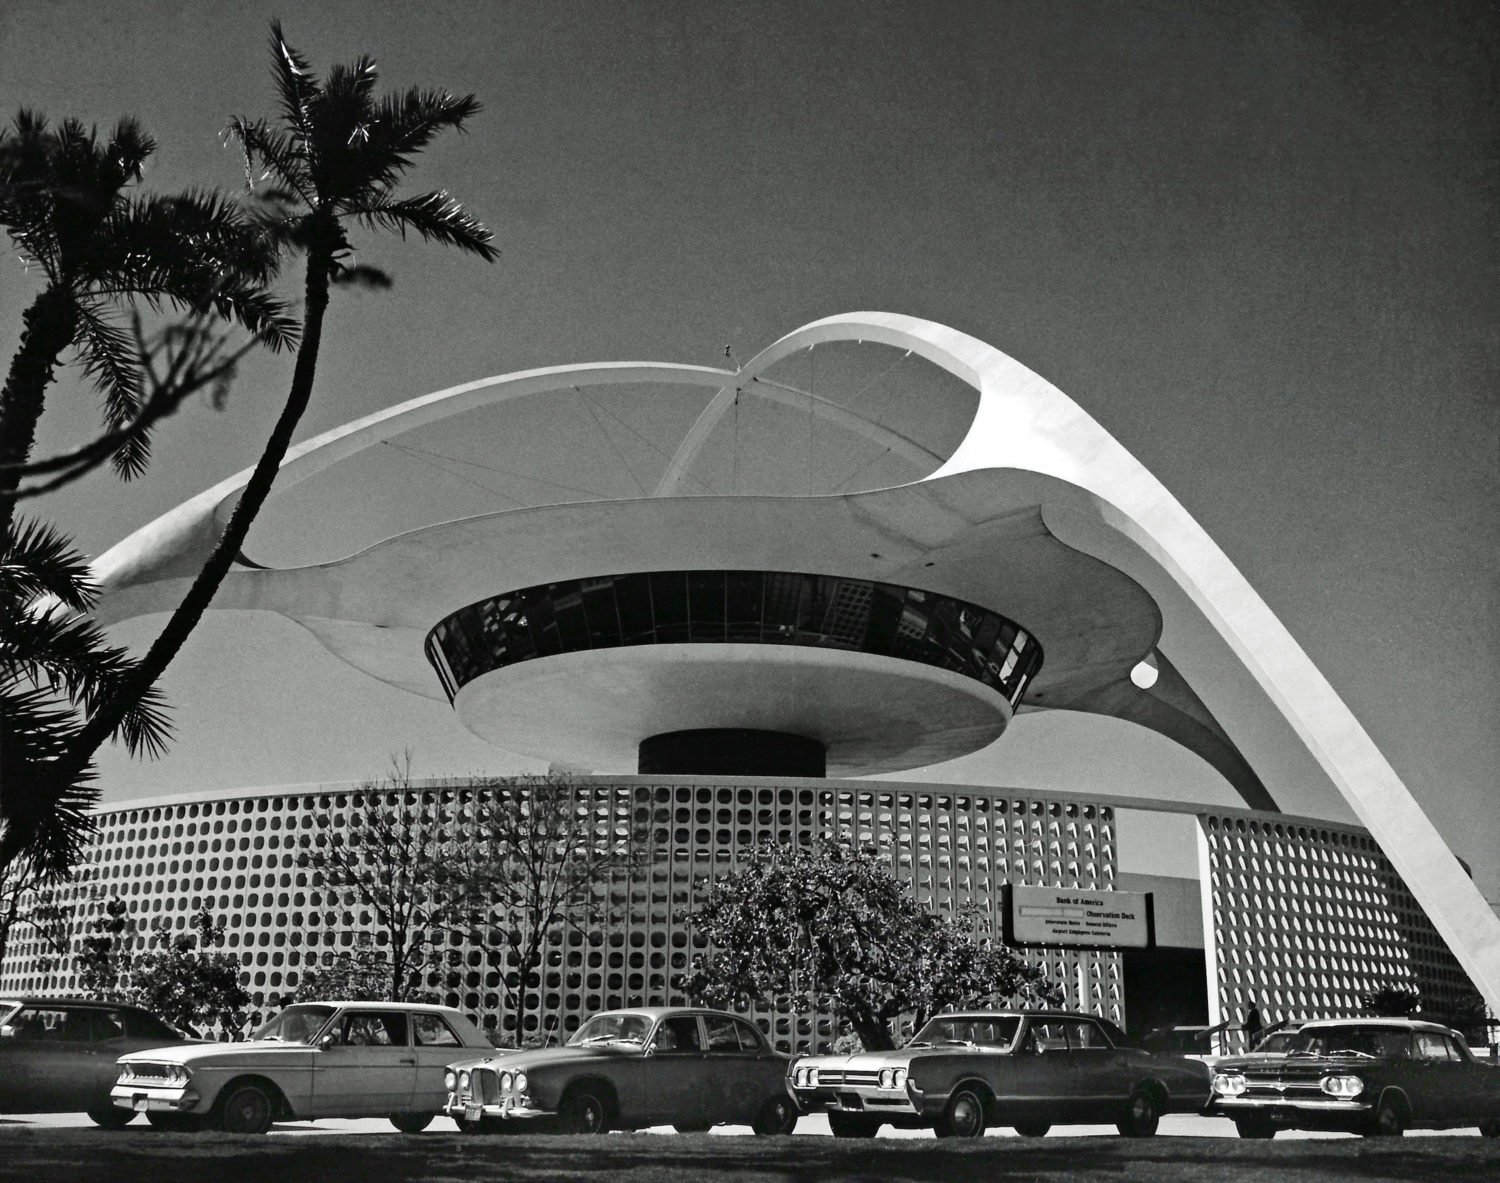 The Iconic Theme Building Turns 60 In June – Will It Survive The Next LAX Era?